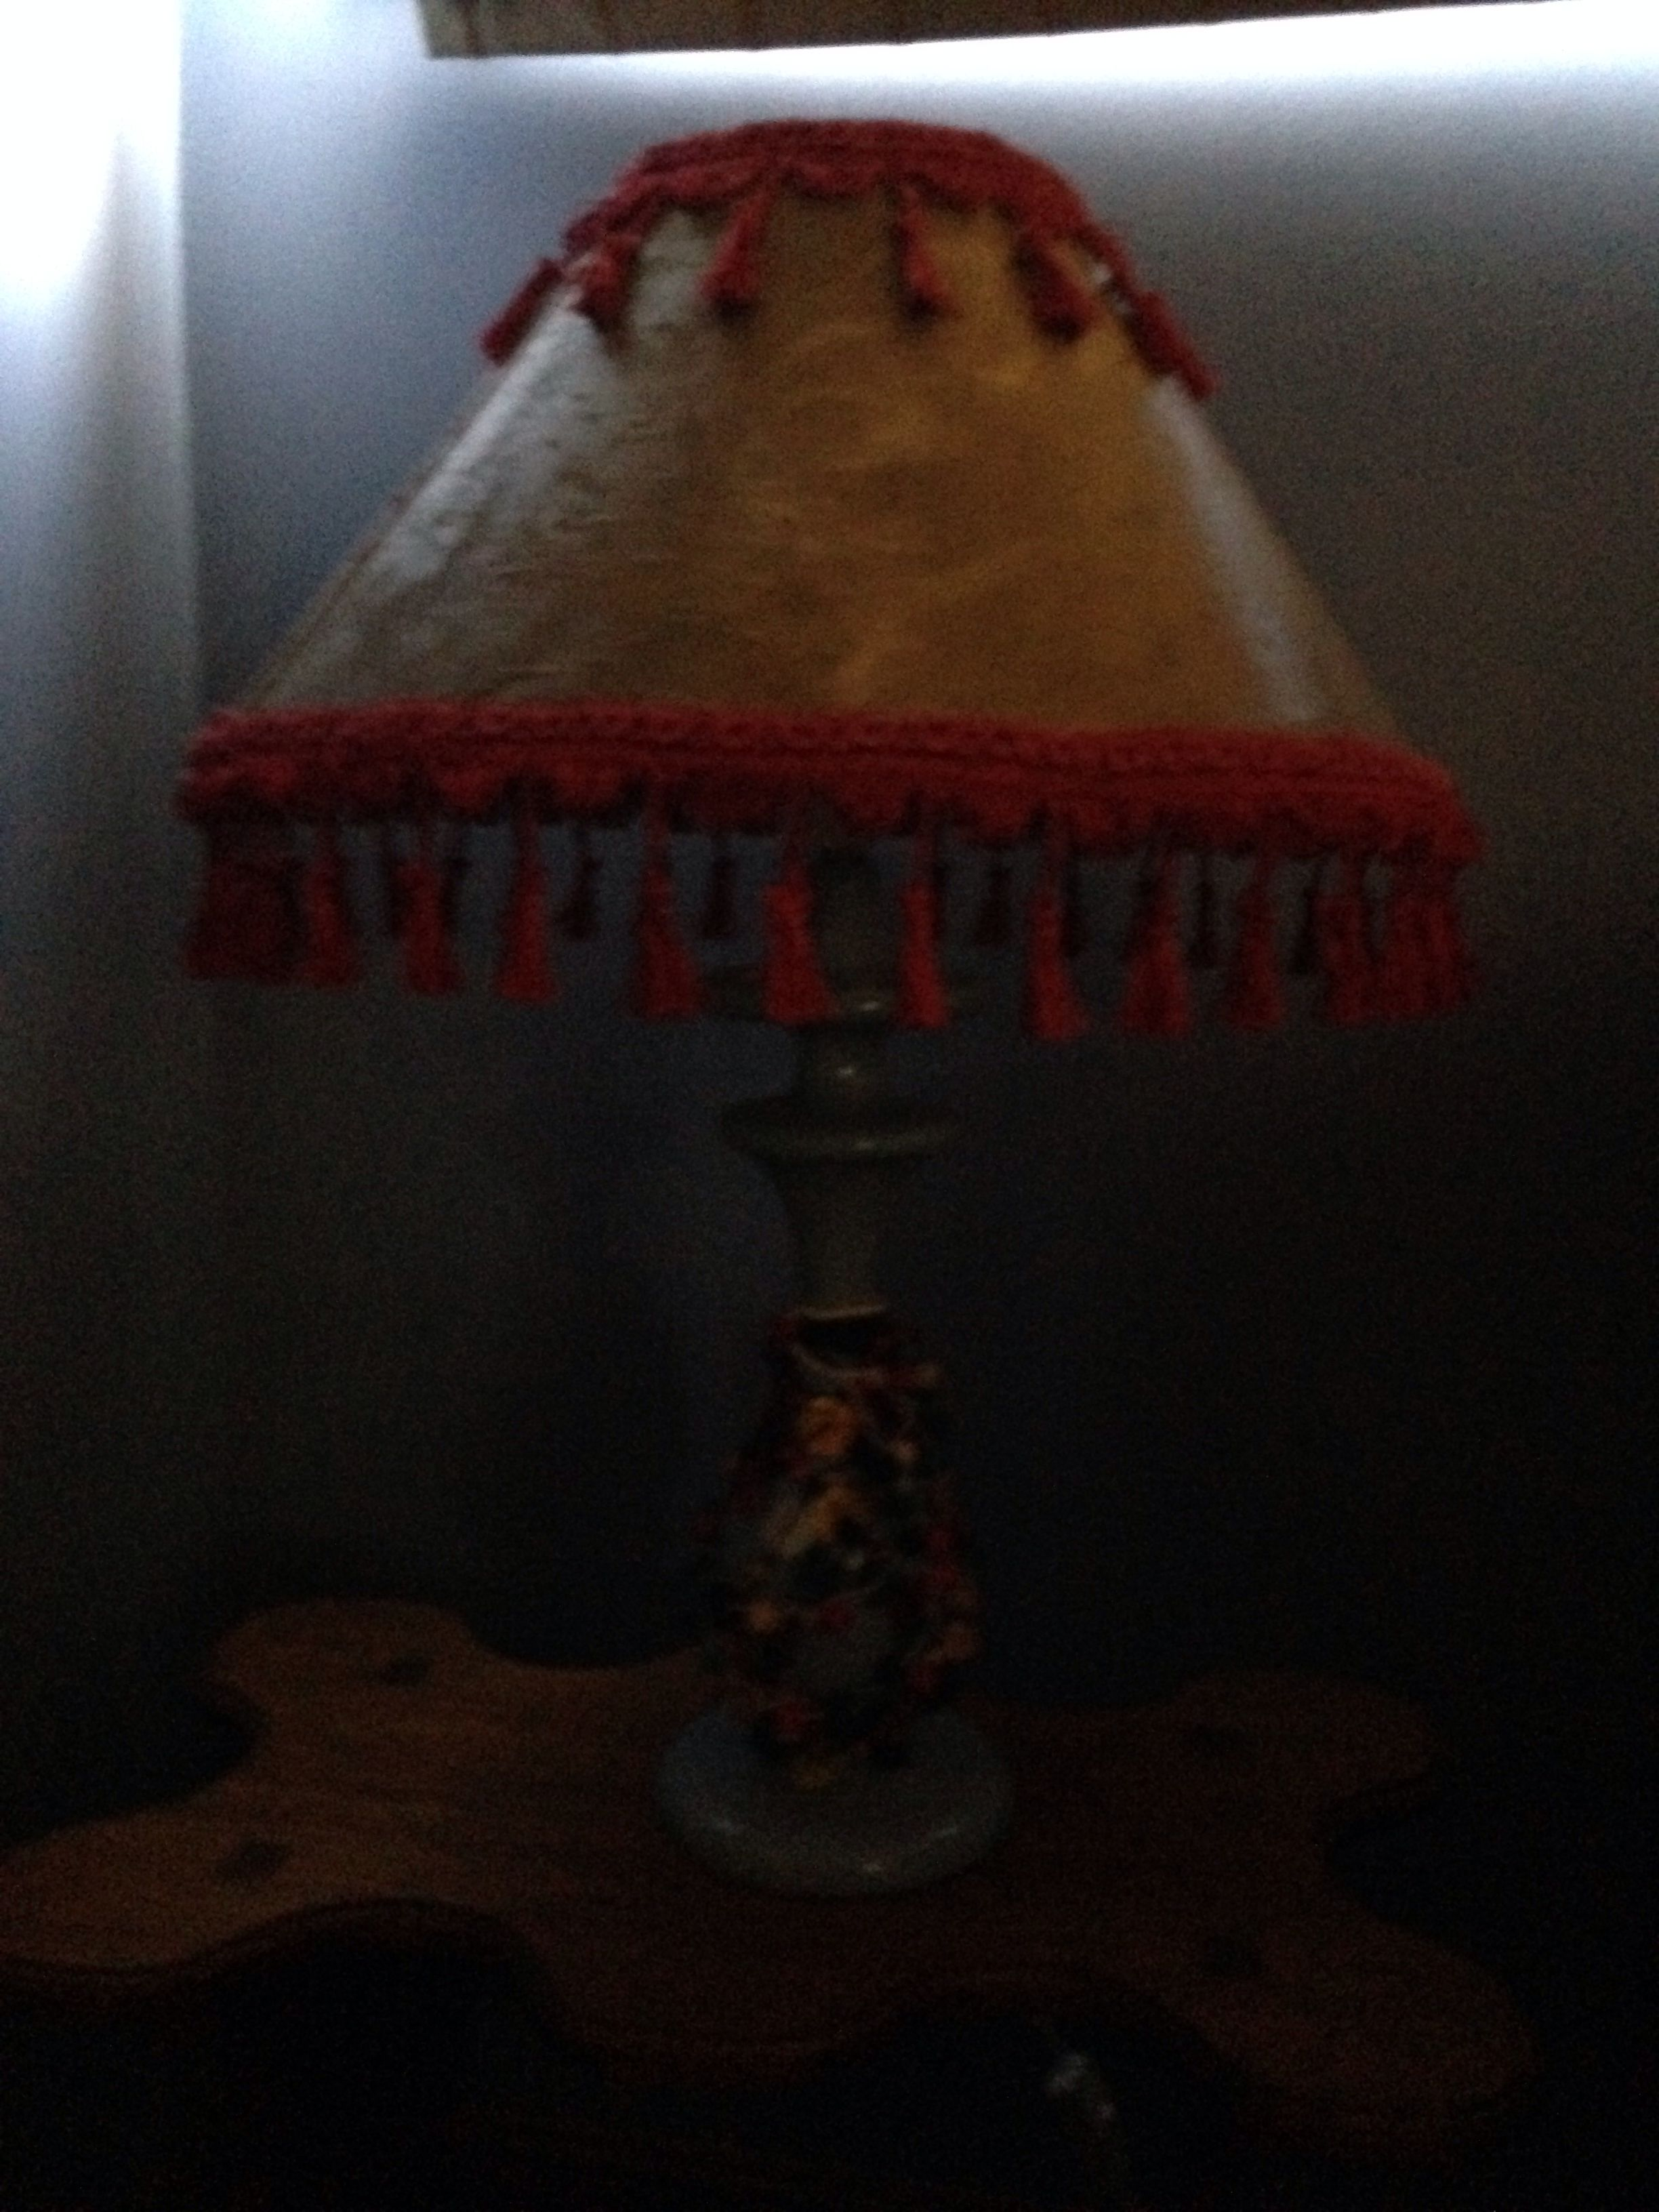 An upcycled lampshade simply with gold paint and tassels!